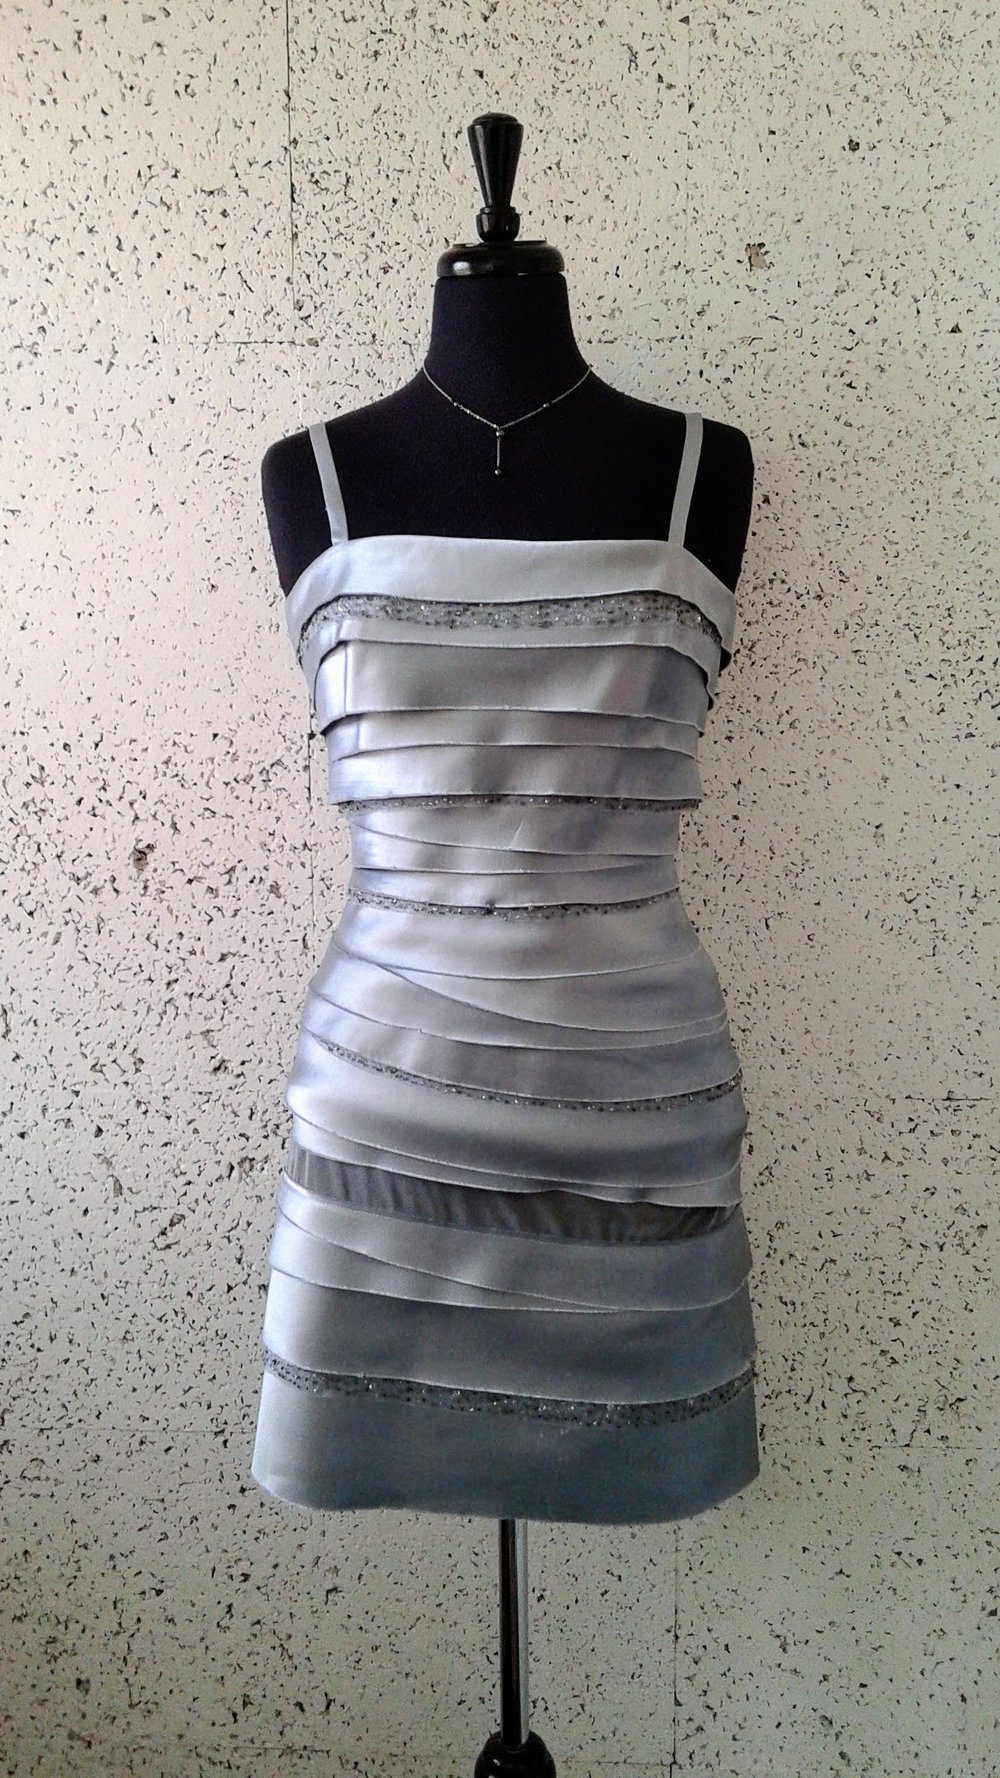 BCBG Max Azria  dress; Size 4, $54. Necklace, $12